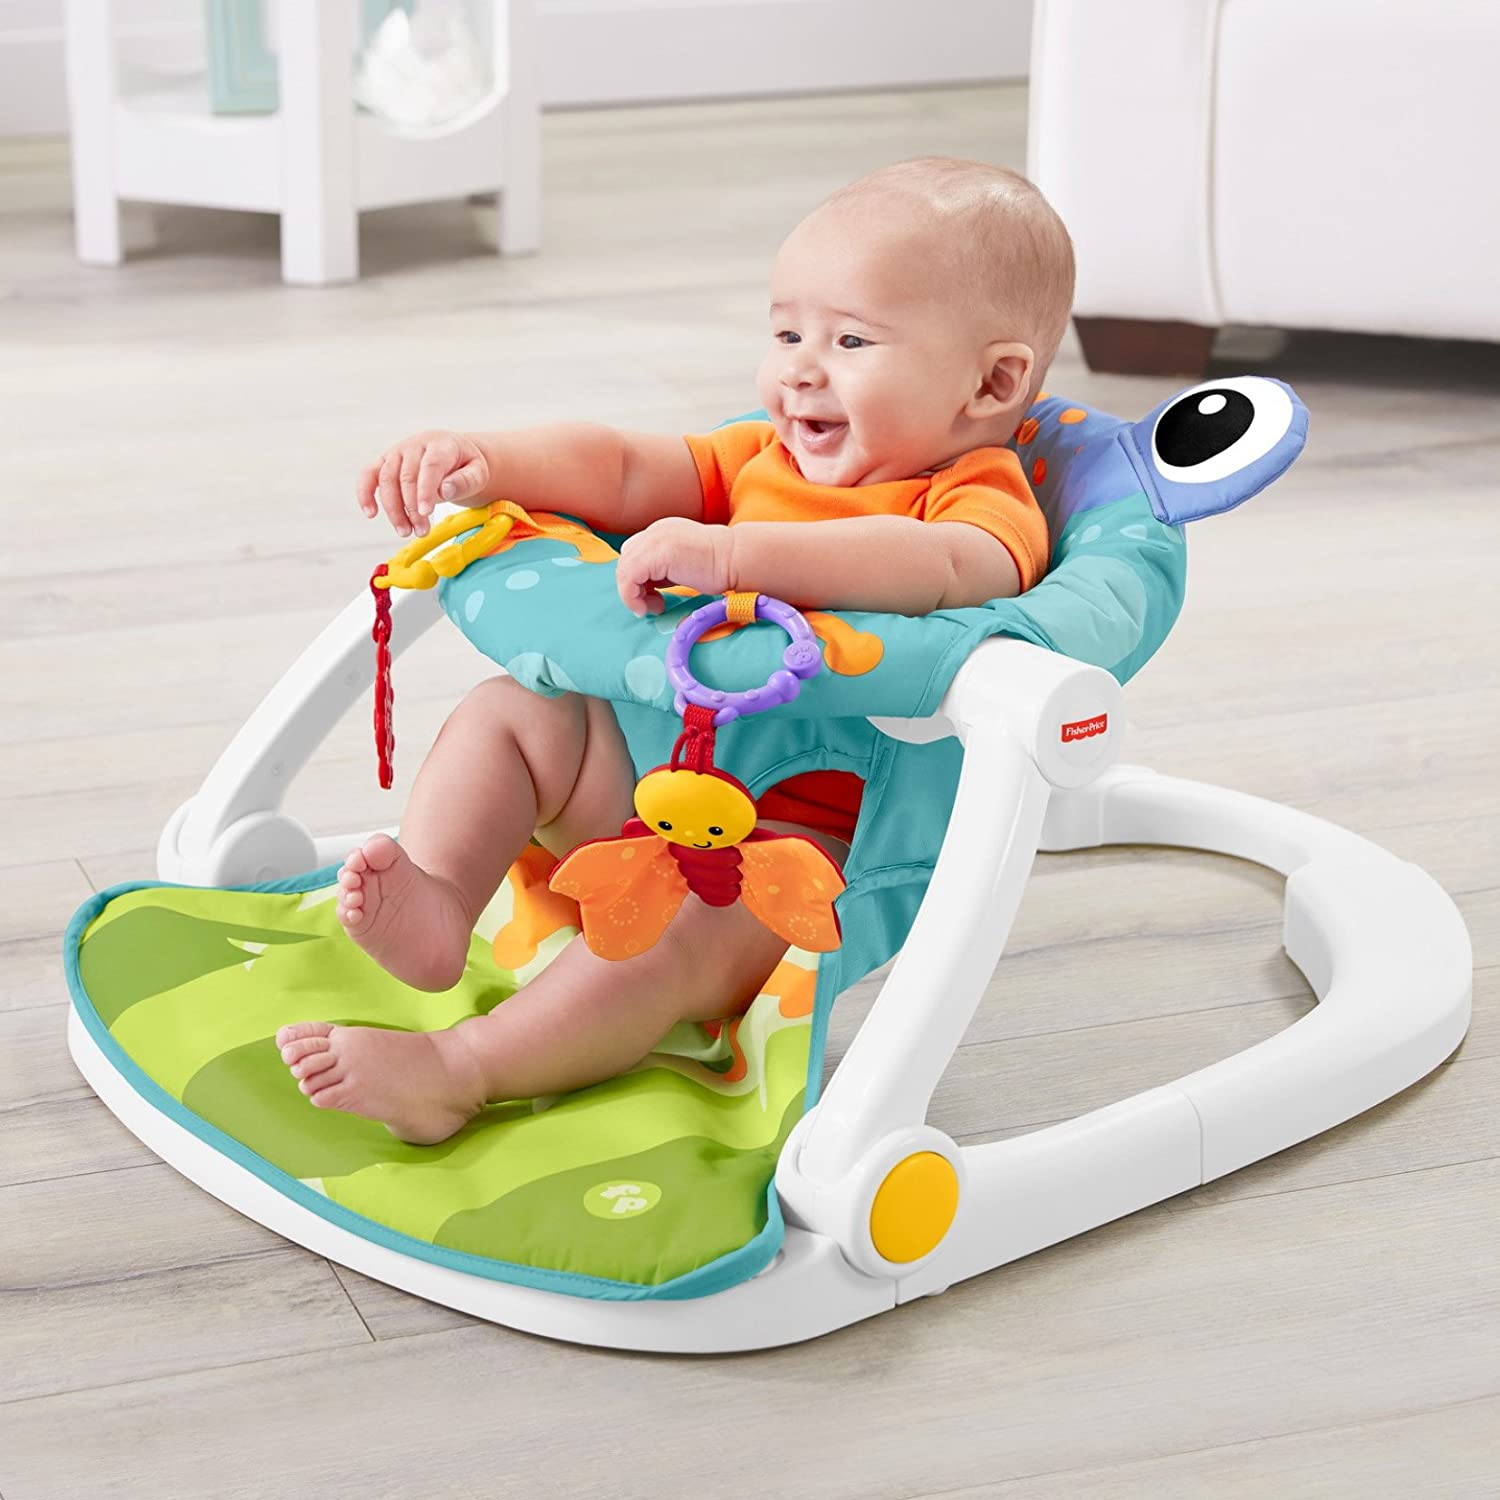 Buy Fisher Price Sit Me Up Floor Seat line at Low Prices in